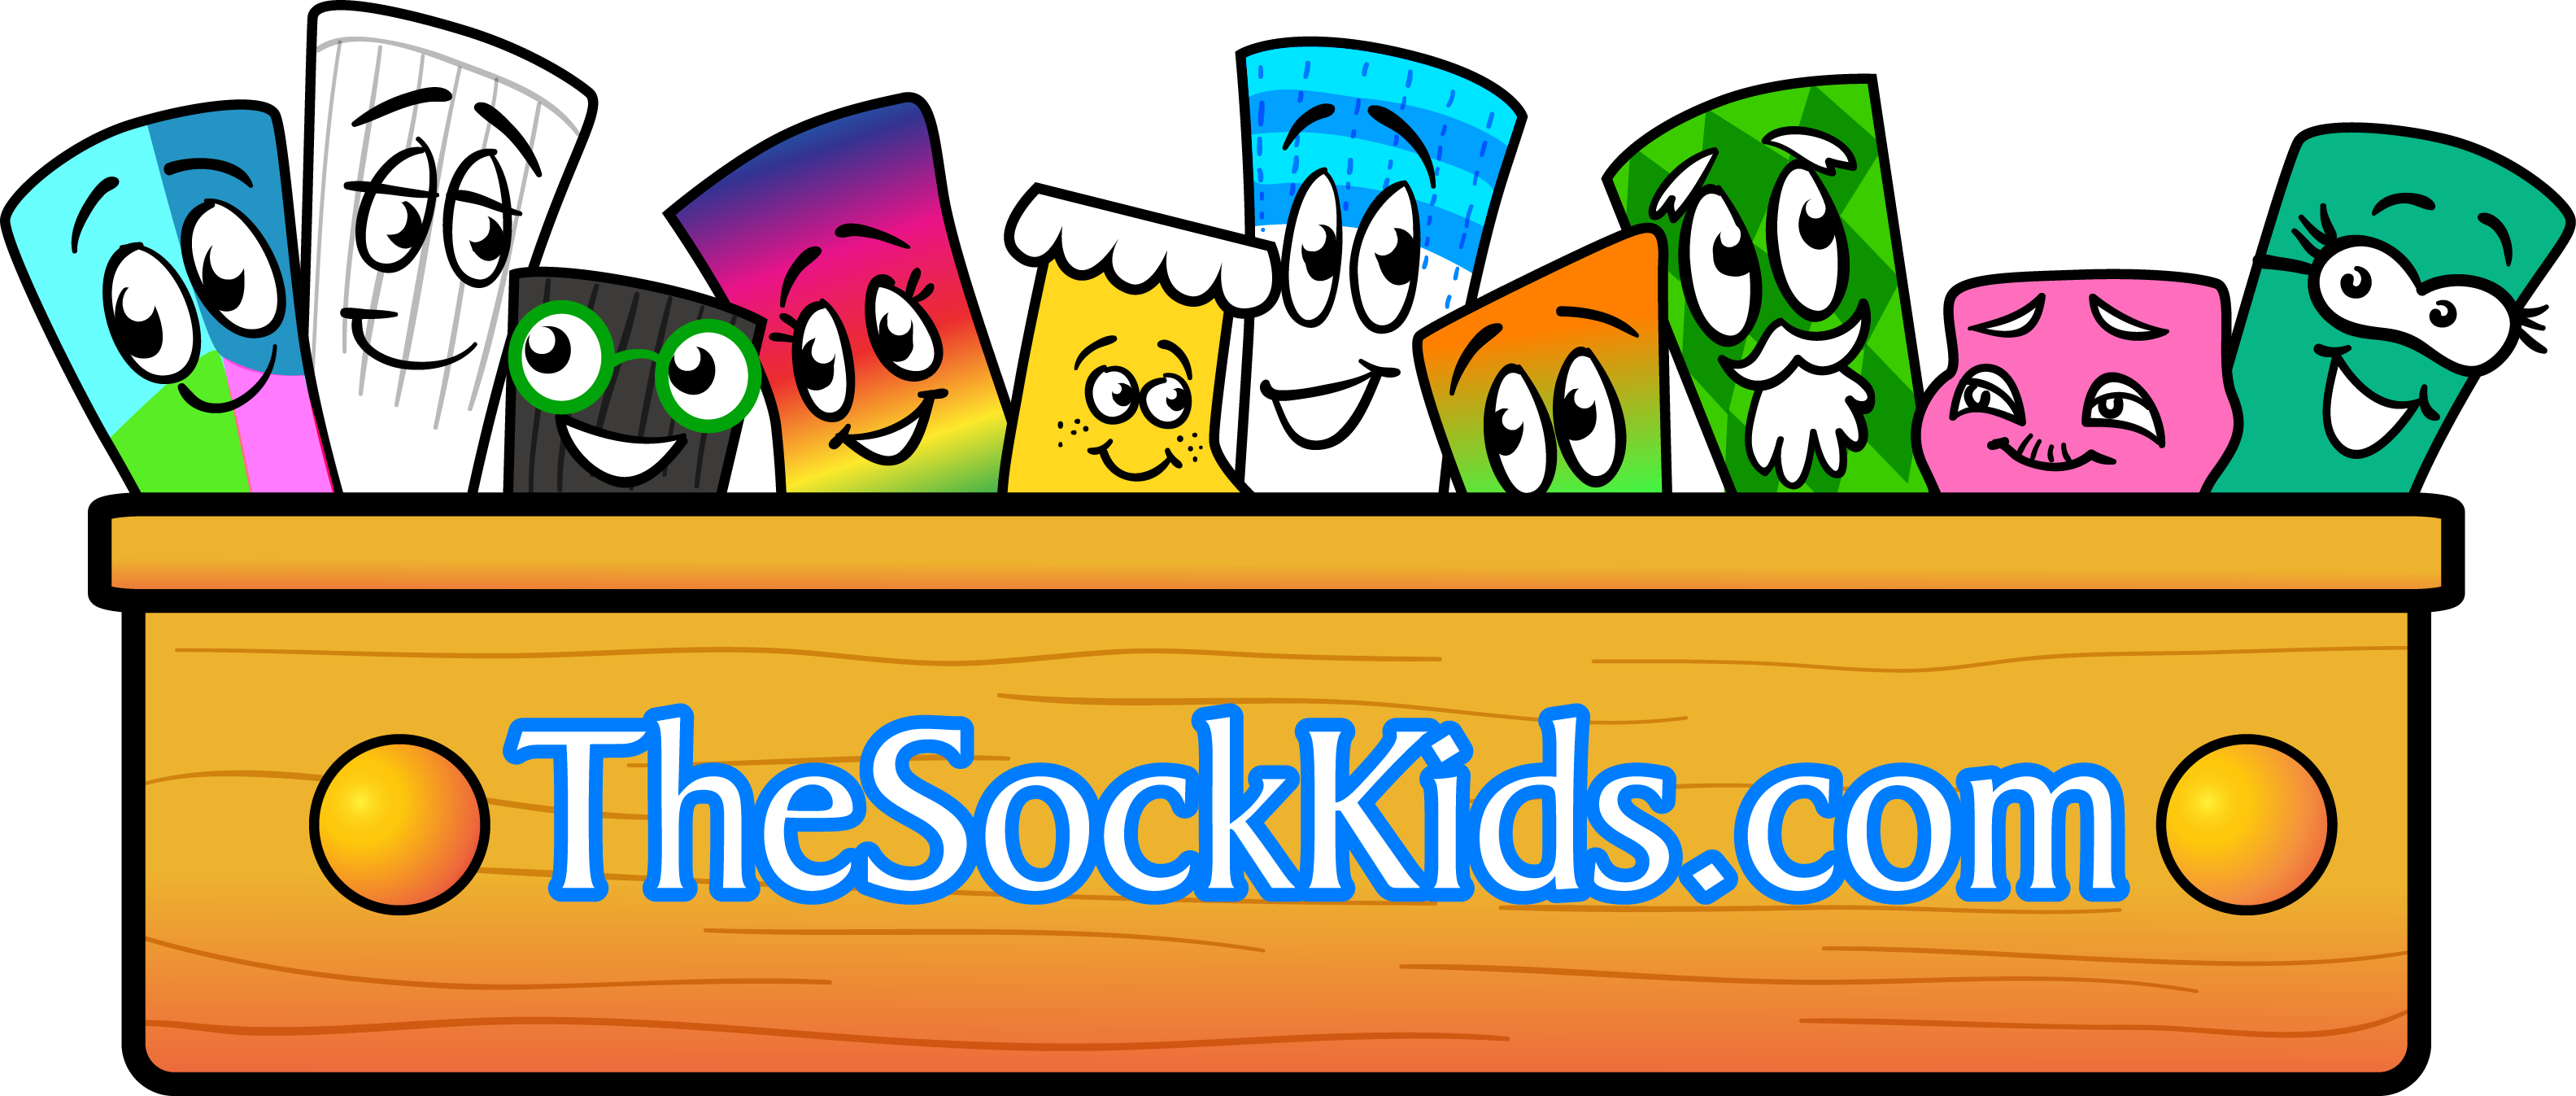 Whooshed basketball clipart clipart transparent download Blog | Page 2 of 6 | The SOCKKIDS clipart transparent download